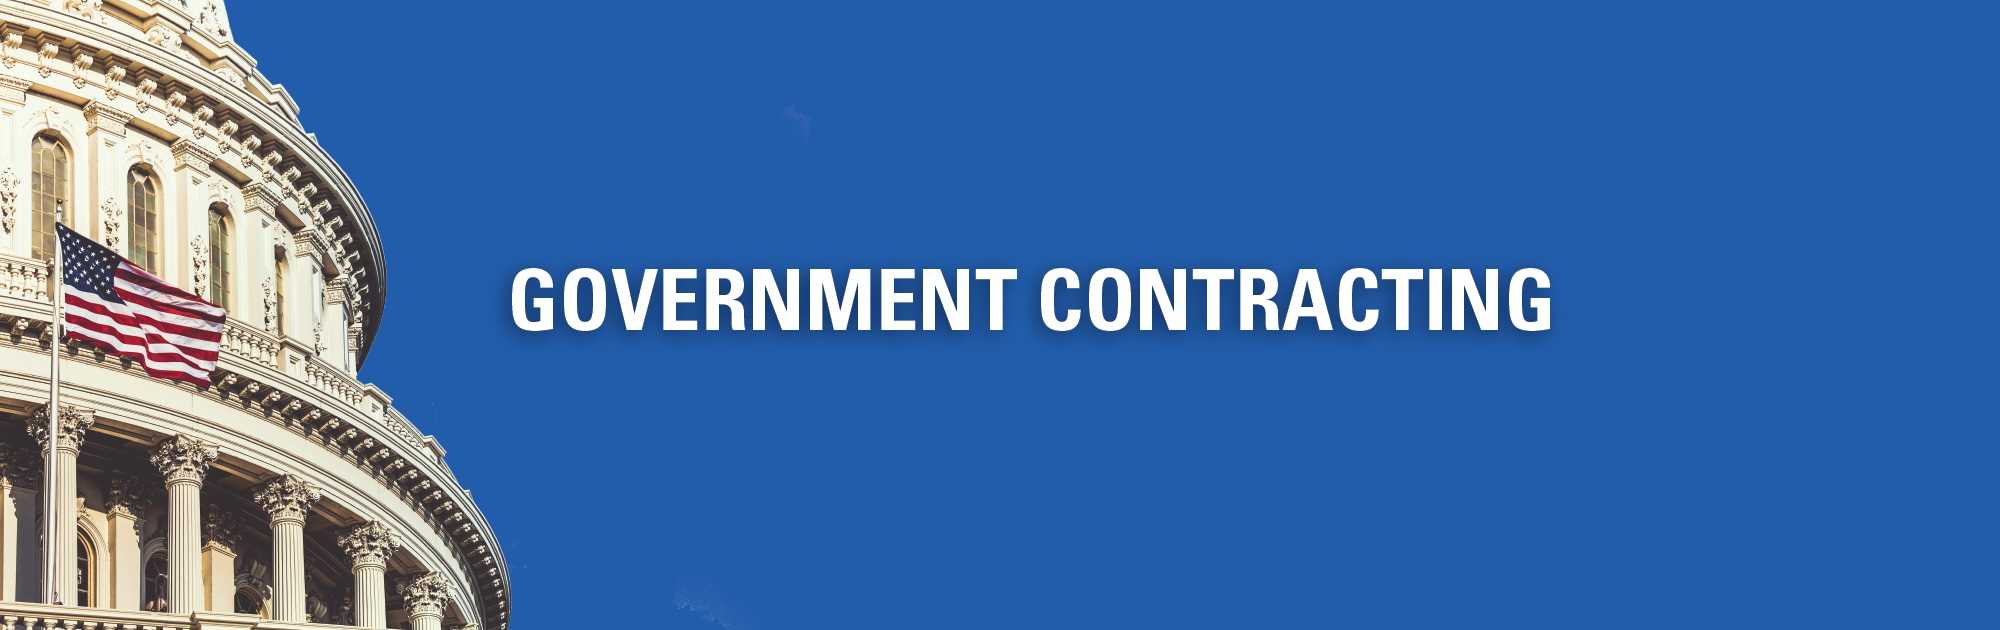 Join us for a free webinar on Government contracting and security